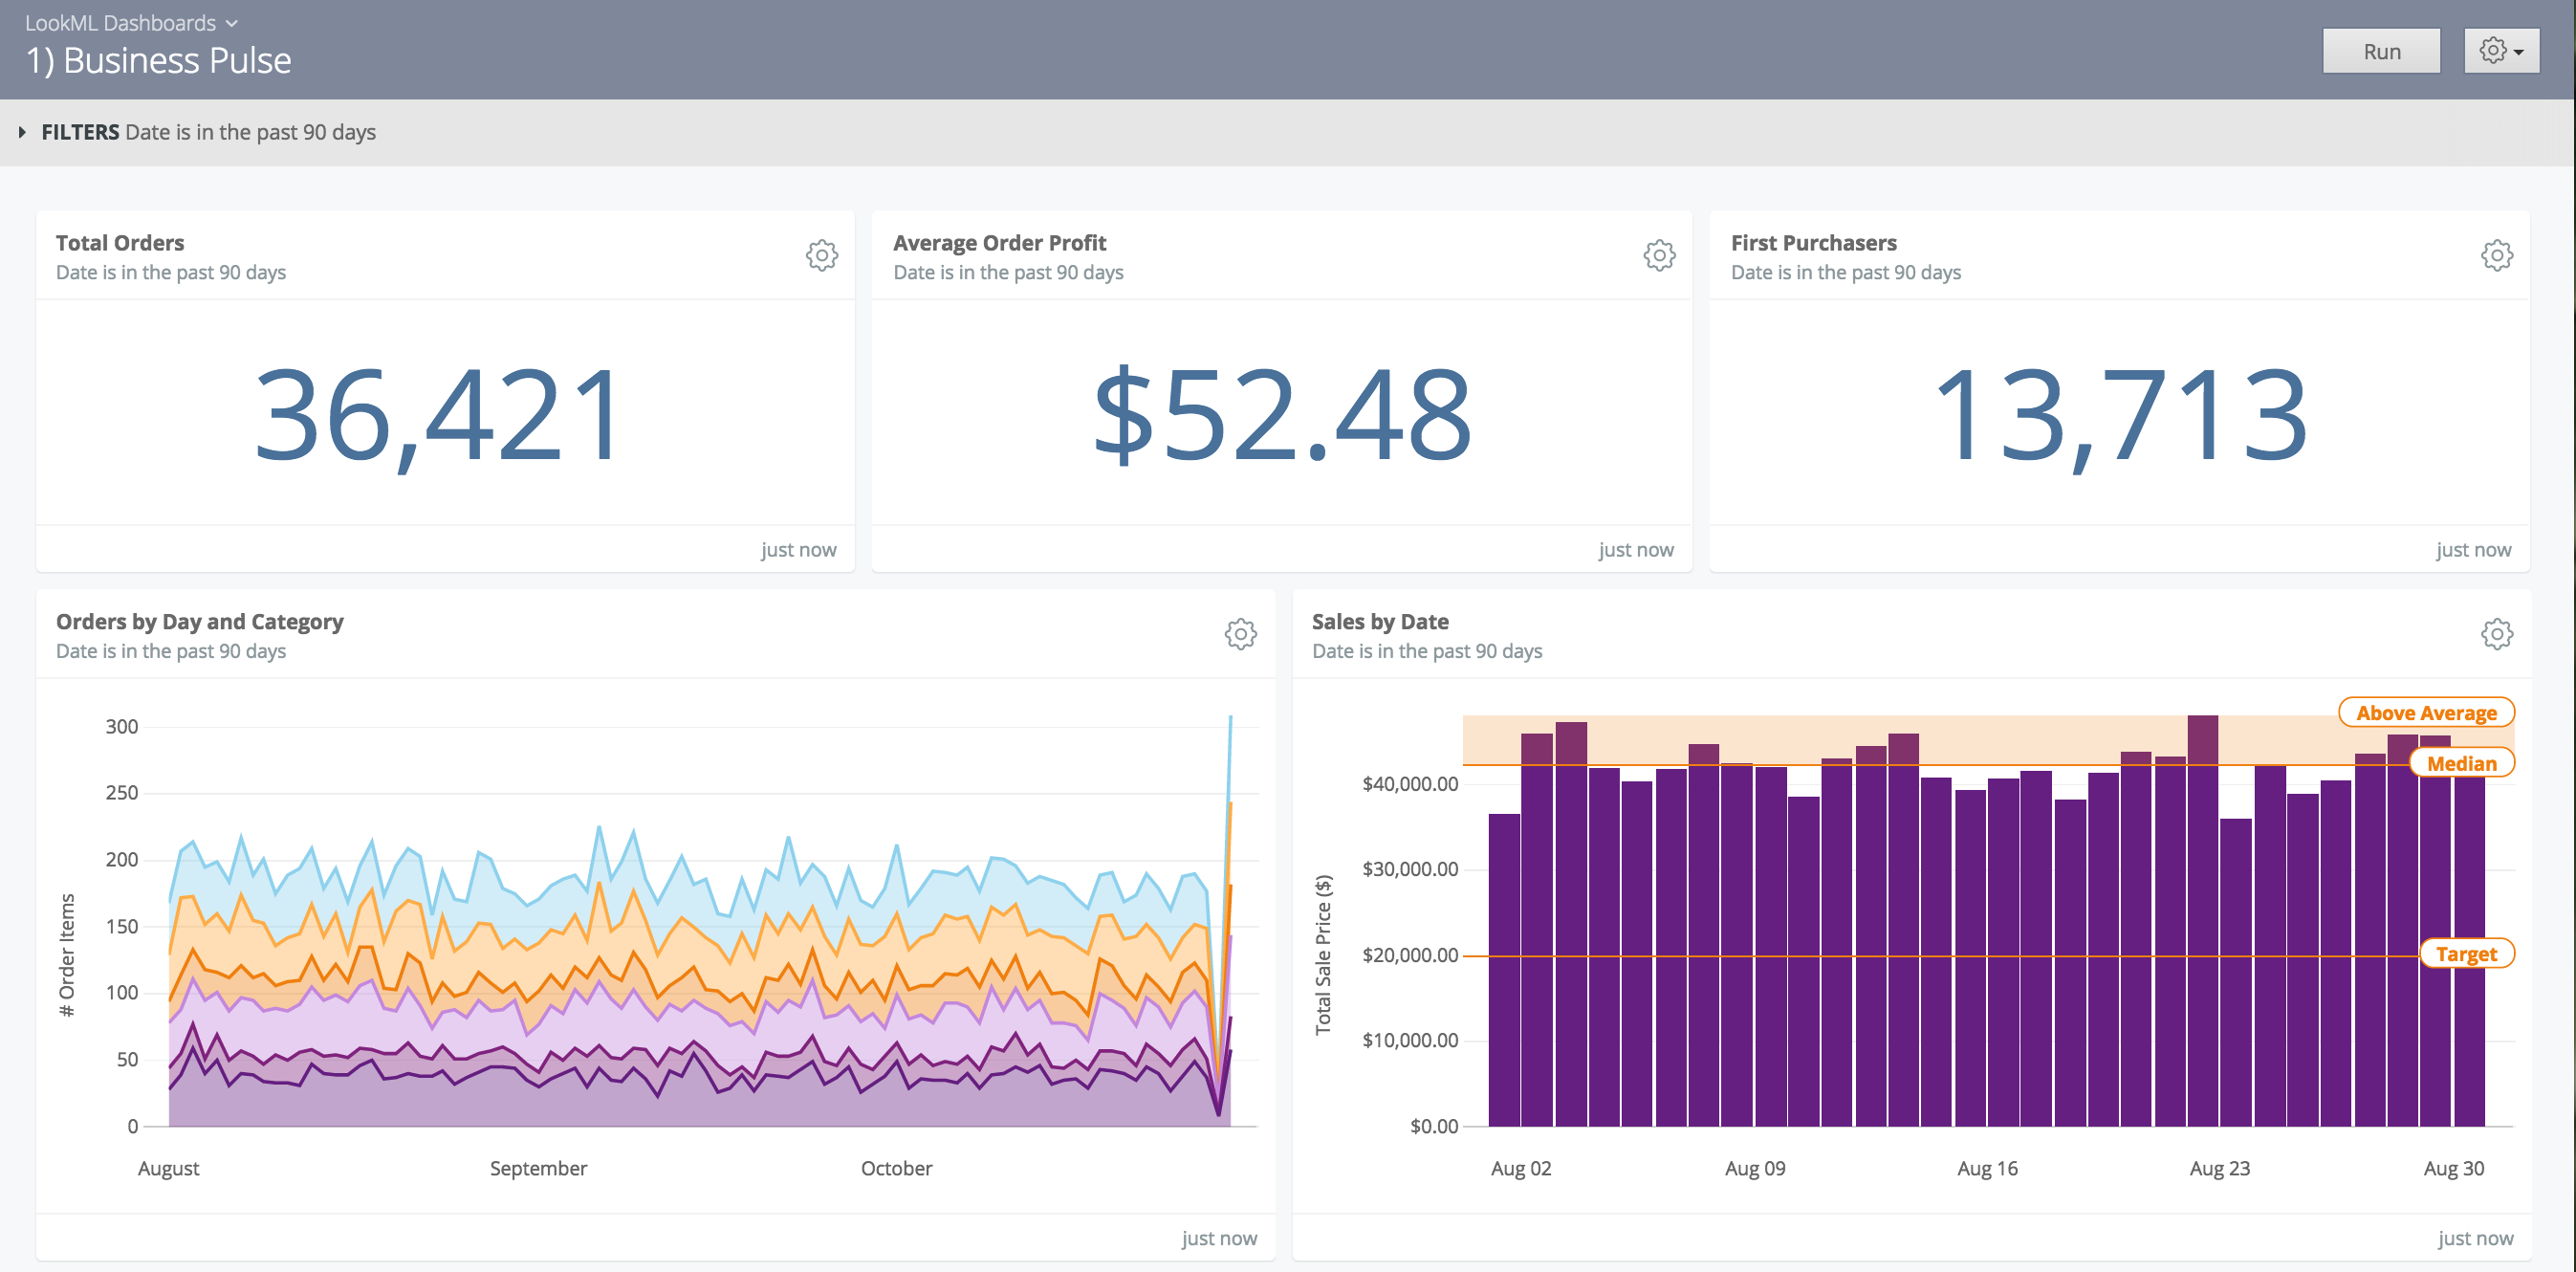 Business Pulse Dashboard